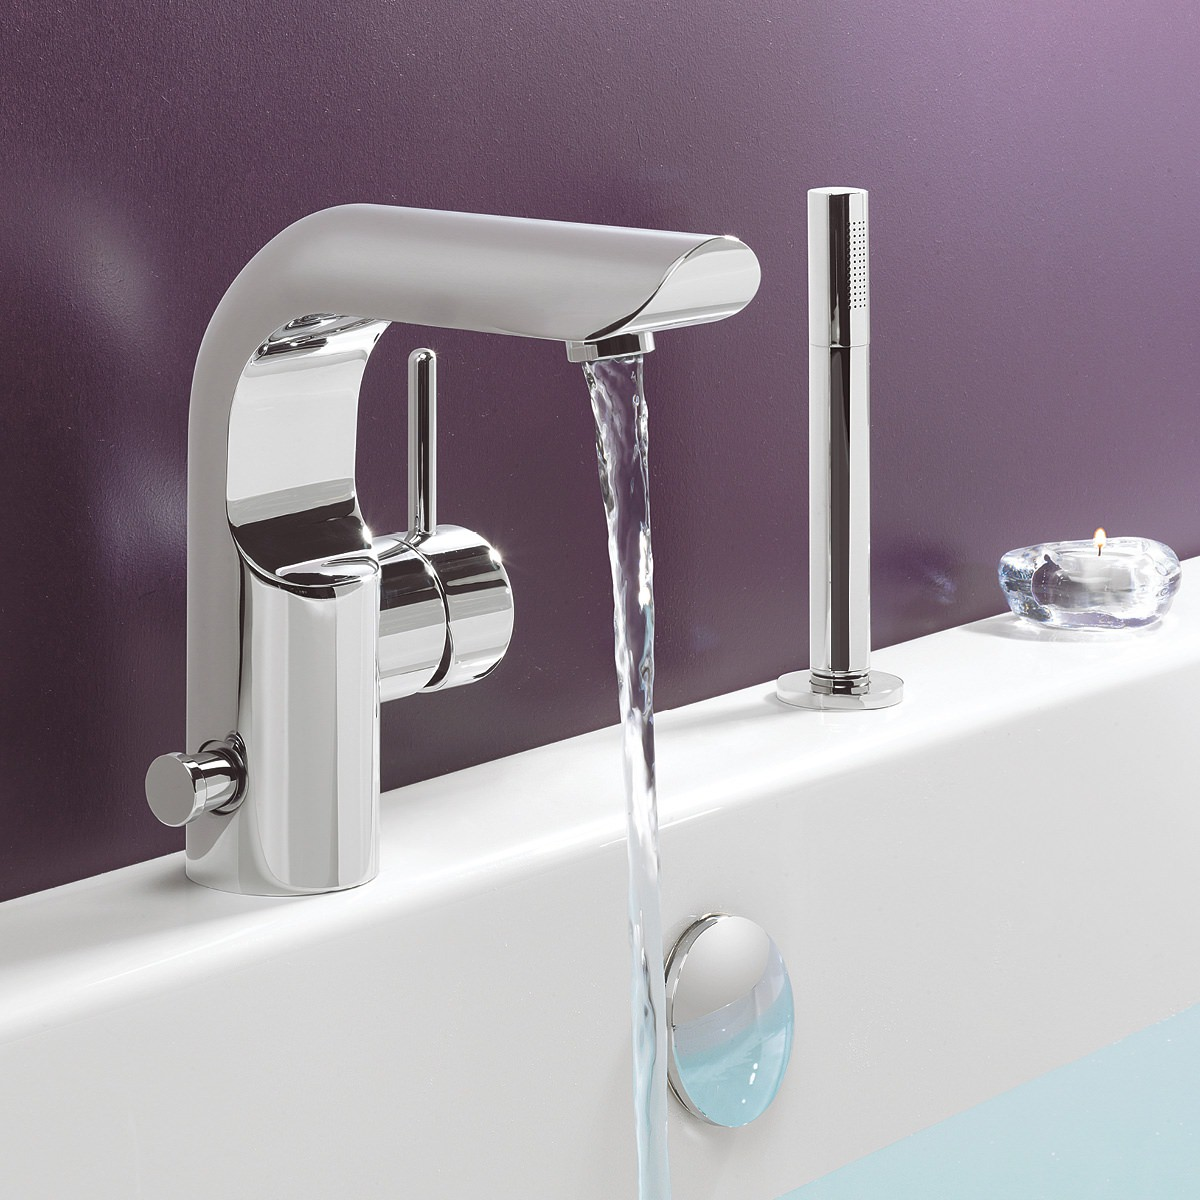 Standard height for towel bar in bathroom - Crosswater Elite Monobloc Bath Shower Mixer Tap With Kit